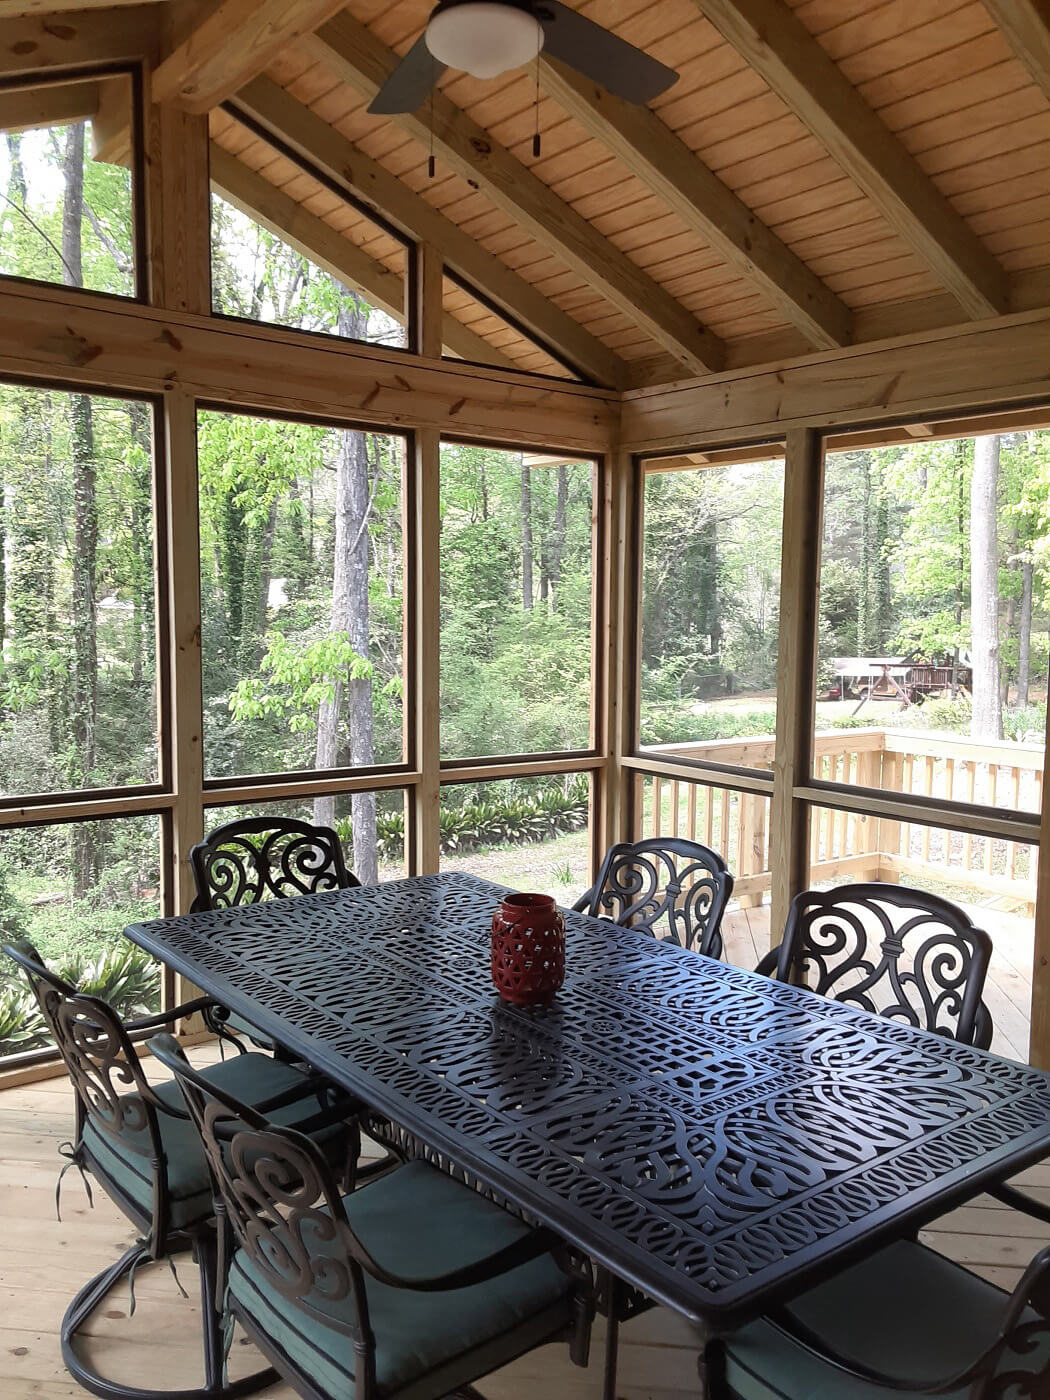 Interior view of screened porch with dining area